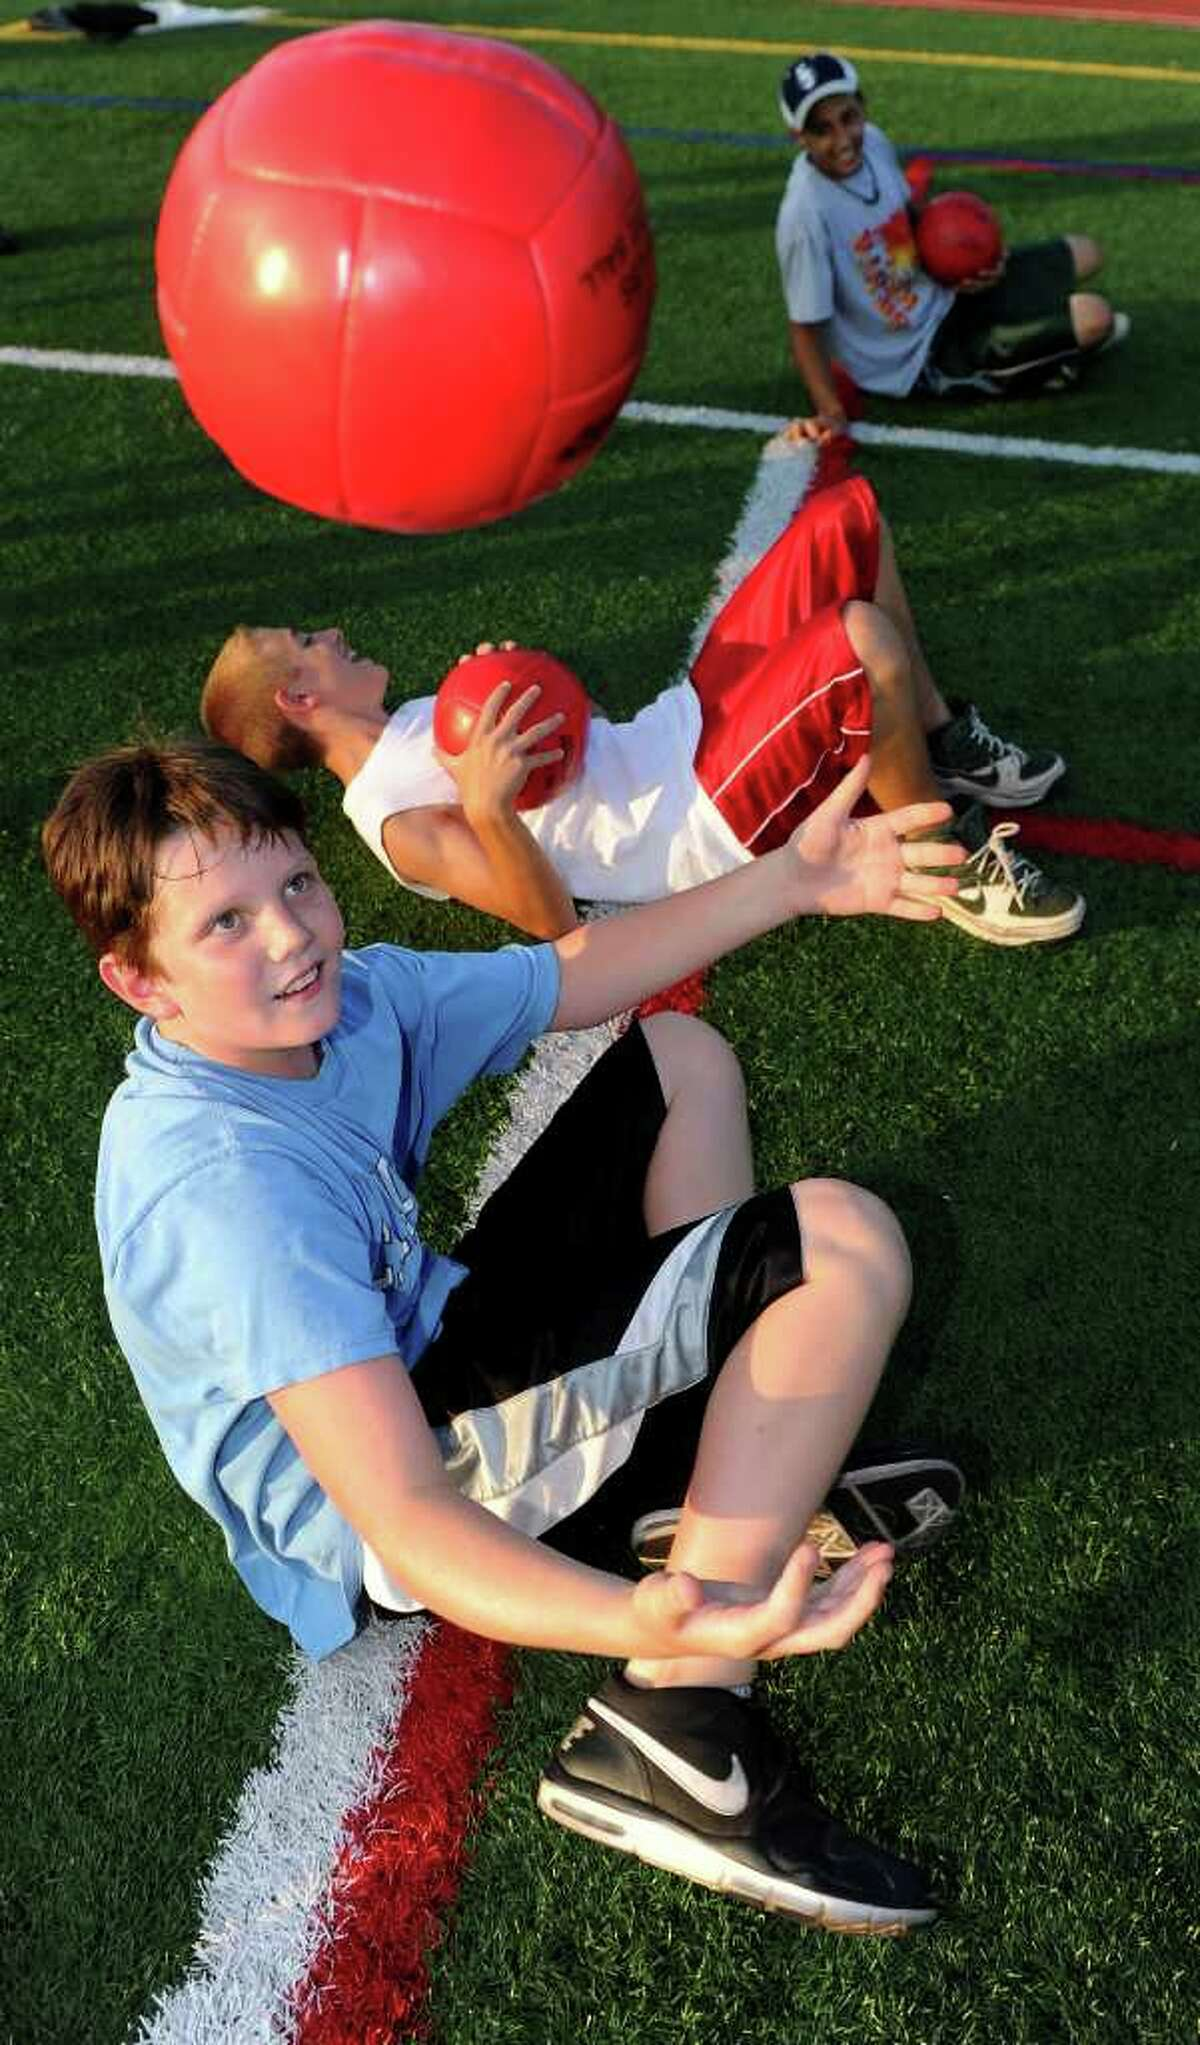 Ryan Holbrook, 11, practices a fitness drill during the Chelsea Cohen Fitness Academy Kickoff at Norwalk High School's Testa Field on Thursday, August 5, 2010.